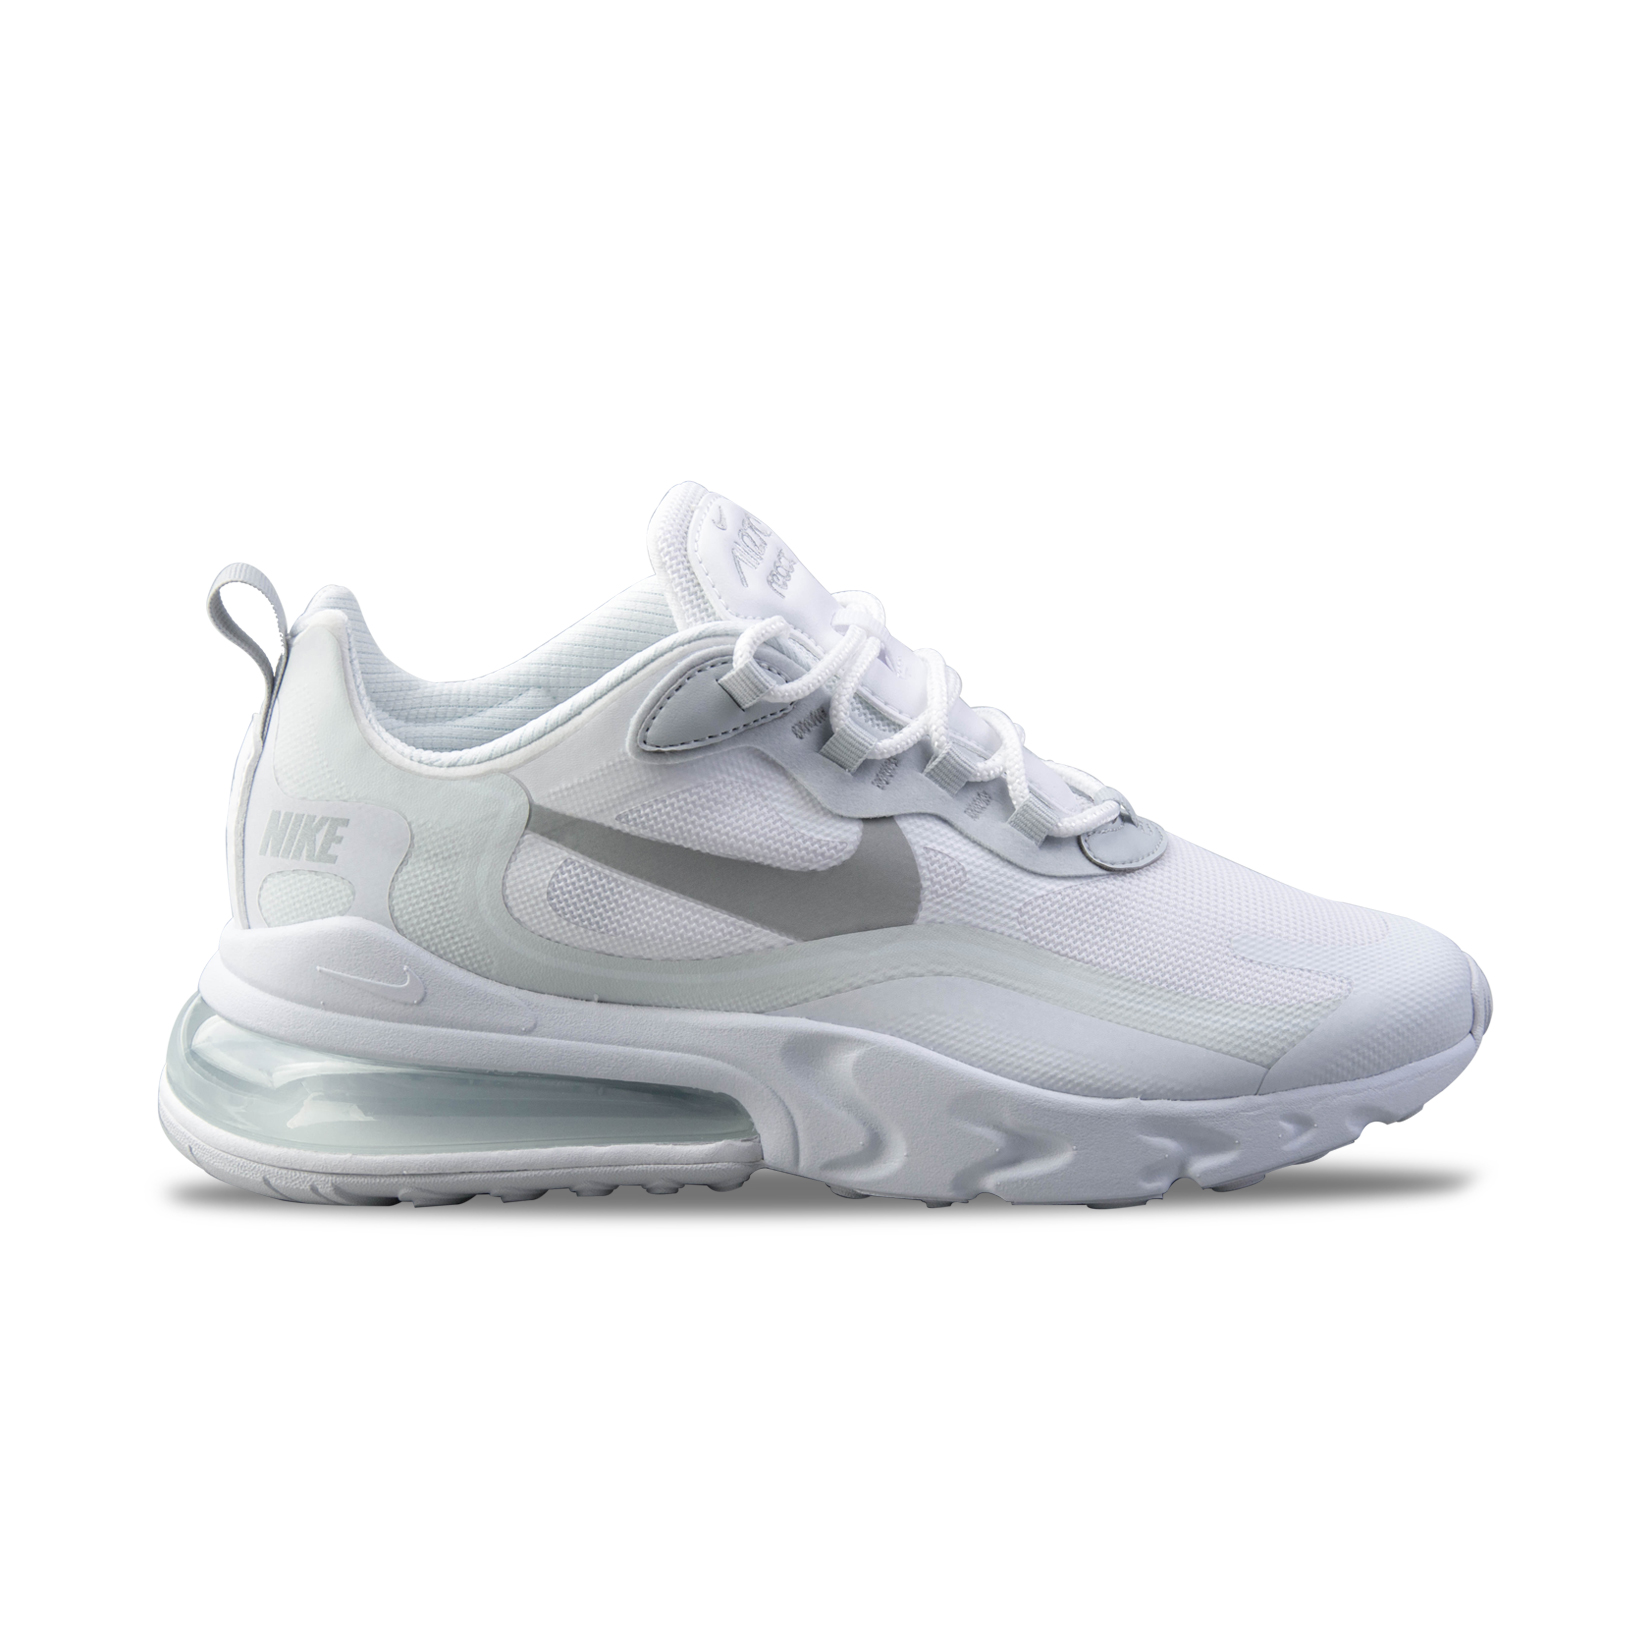 Nike Air Max 270 React White